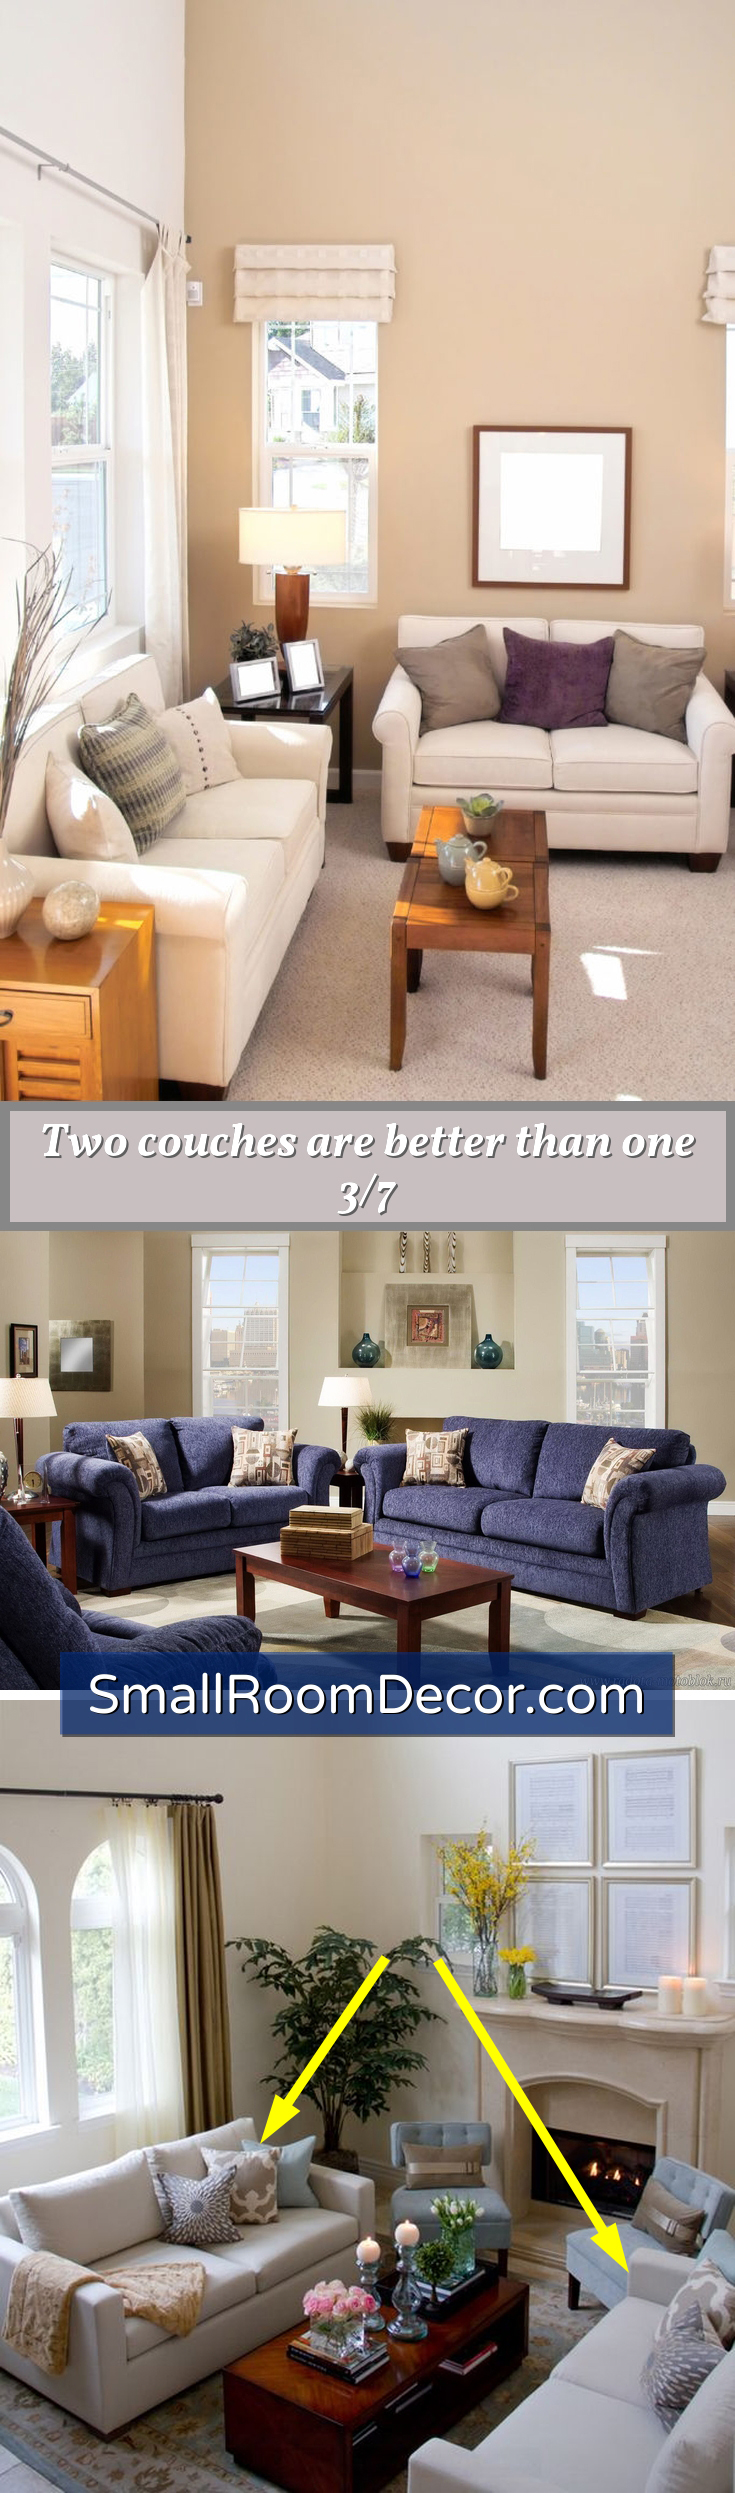 Sofa For Small Living Room 7 Couch Placement Ideas For A Small Living Room